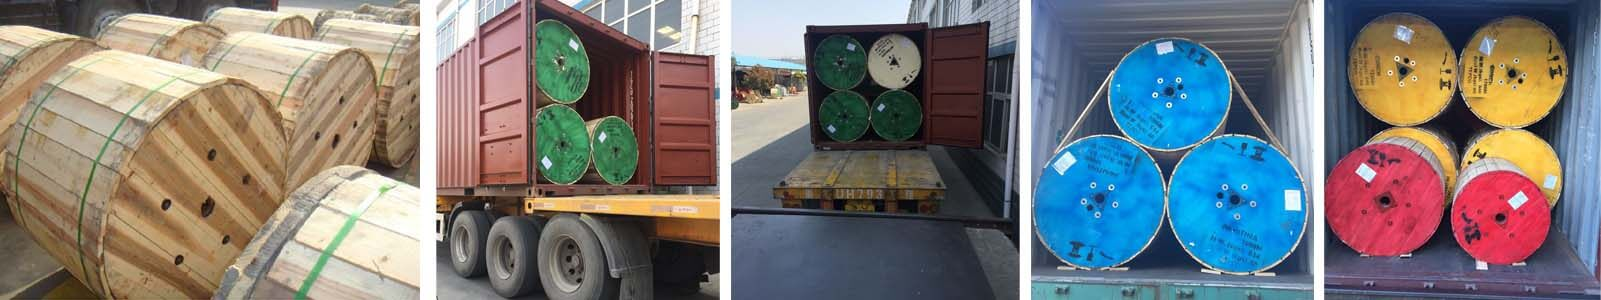 48 core optical fiber cable delivery